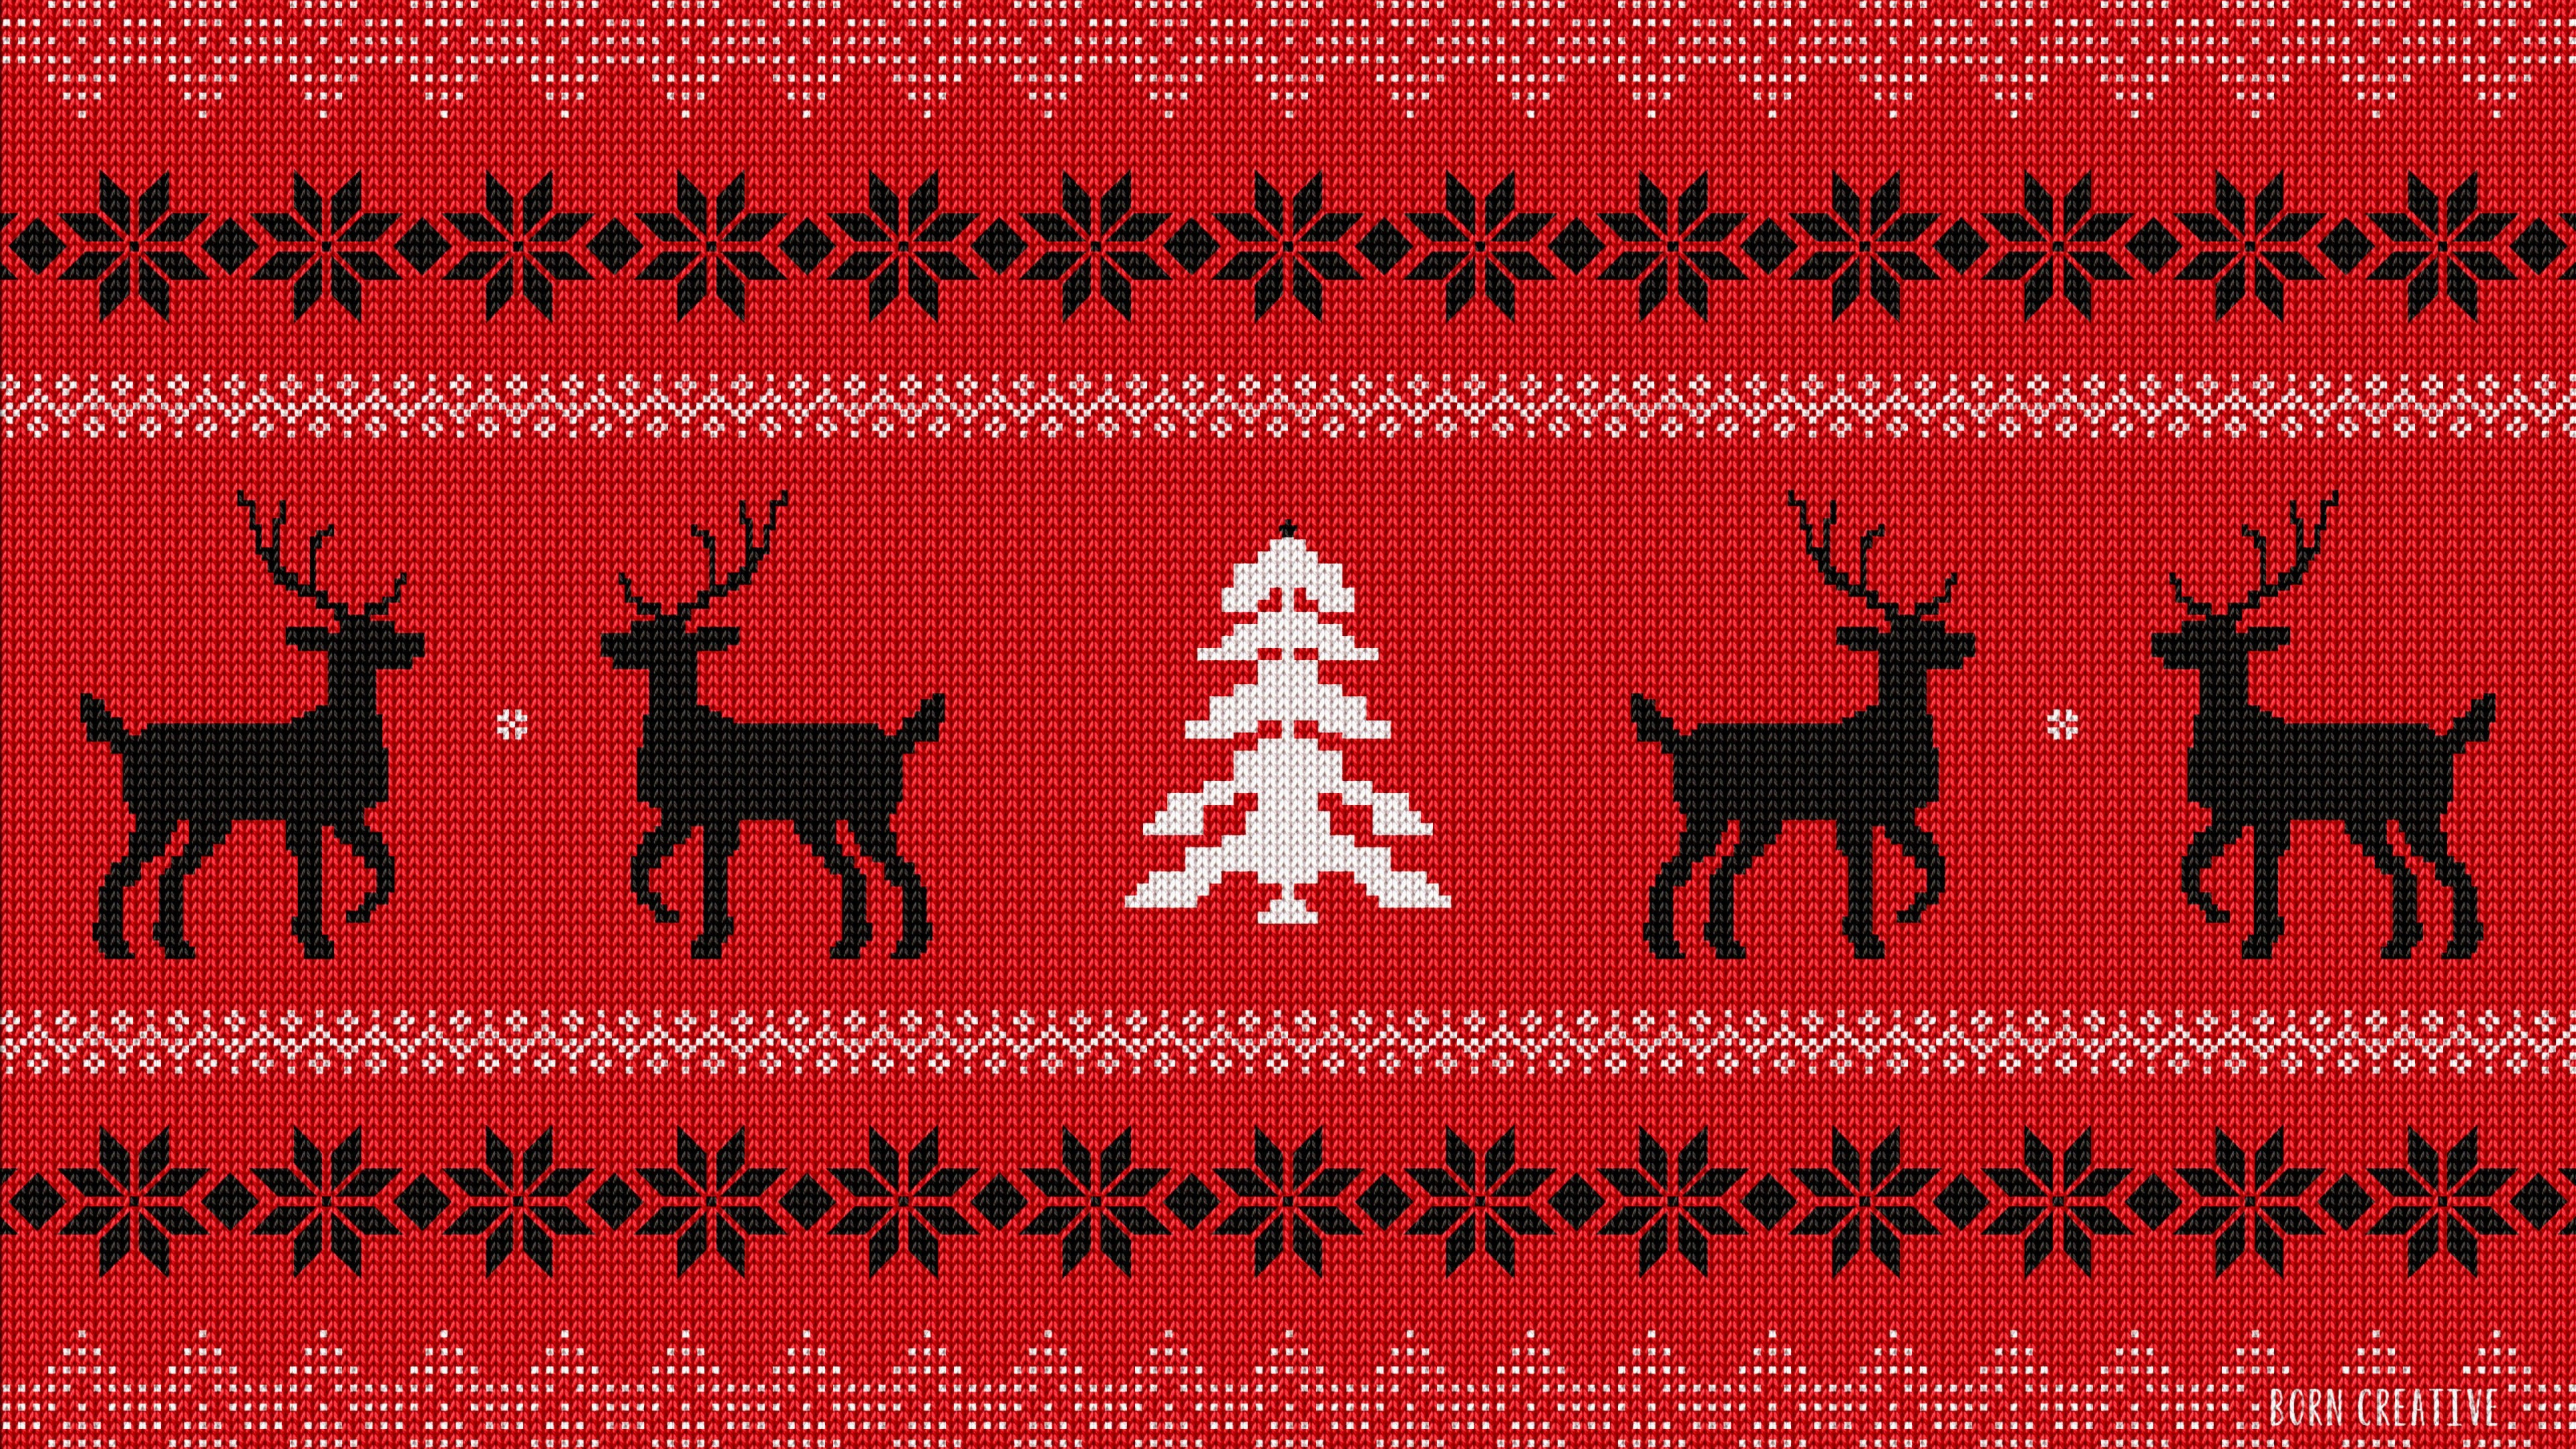 Download ugly christmas sweater hd wallpaper for 4k 3840 x 2160